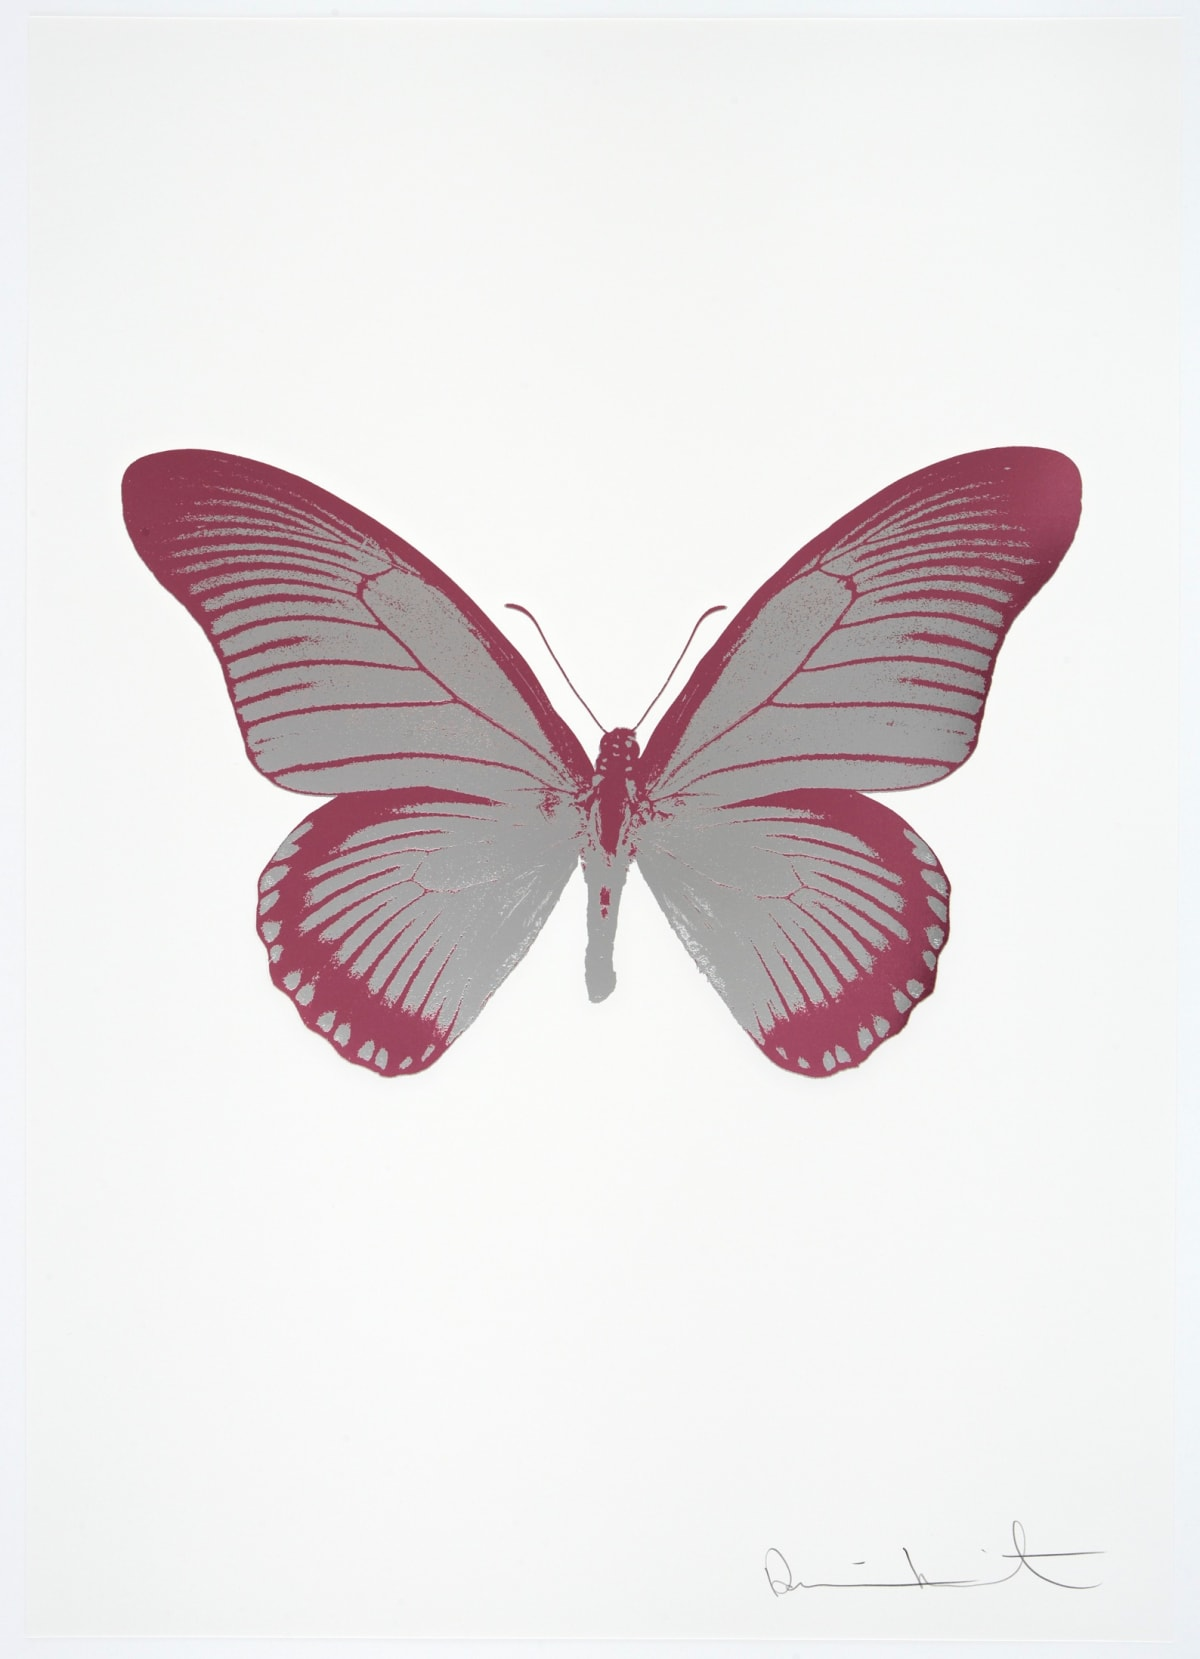 Damien Hirst The Souls IV - Silver Gloss/Loganberry Pink, 2010 2 colour foil block on 300gsm Arches 88 archival paper. Signed and numbered. Published by Paul Stolper and Other Criteria 72 x 51cm OC7990 / 1418-13 Edition of 15